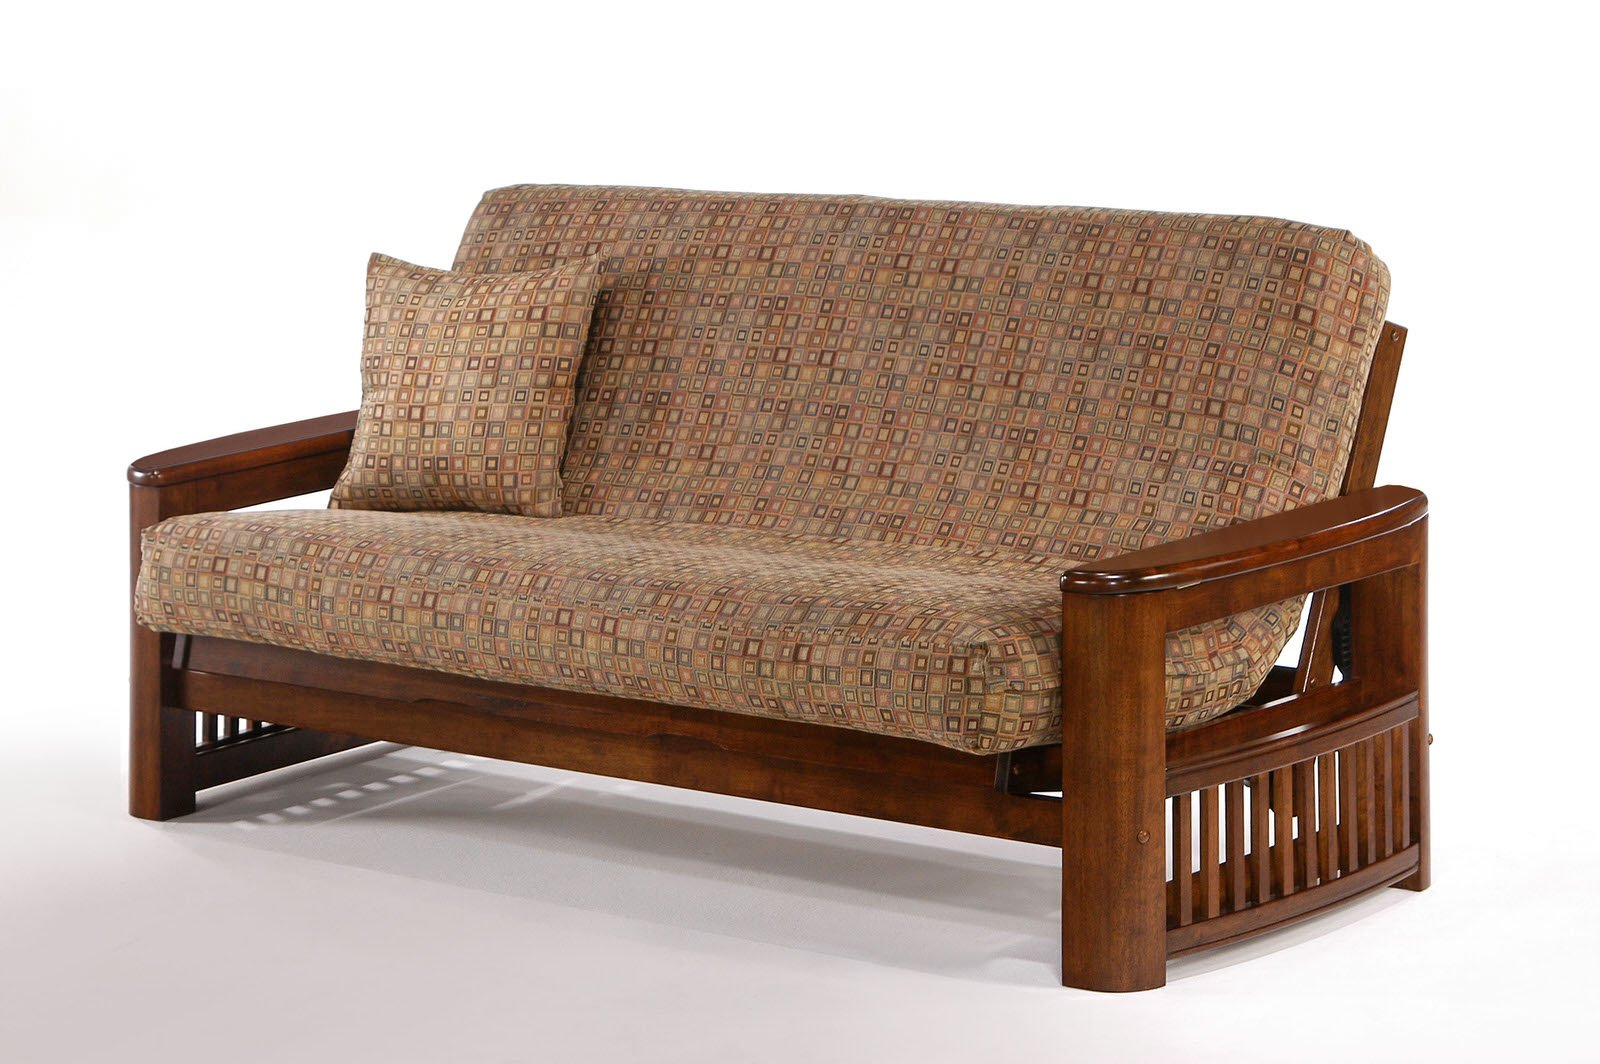 Moonshadow premium futon frame by night day furniture for Large wicker moon chair